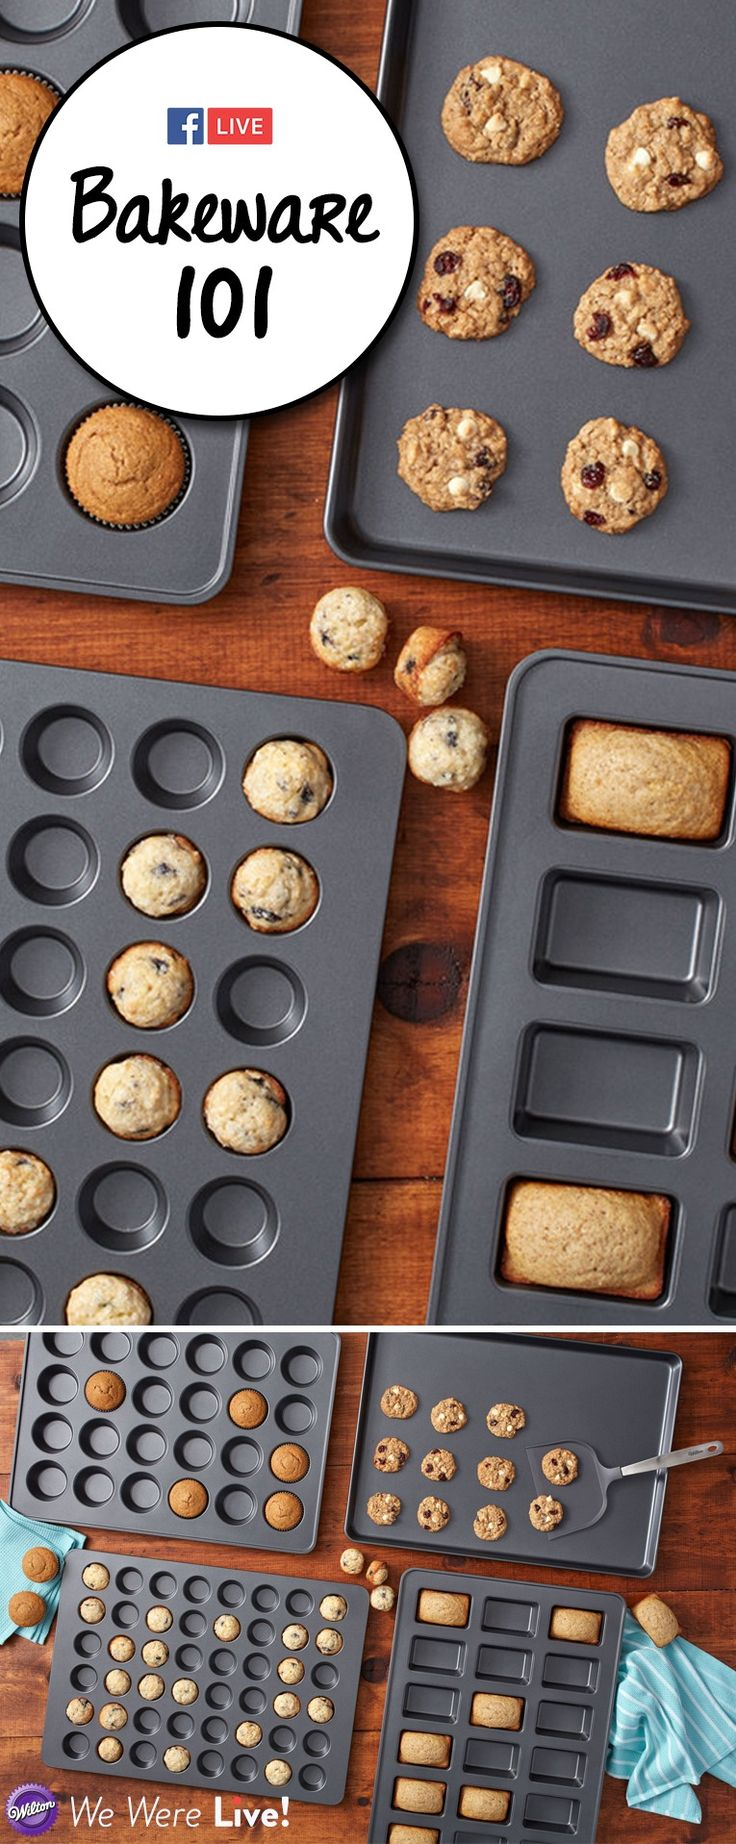 Everything you need to learn about different baking pans from aluminum to silicone! Click to watch our Facebook Live episode on Bakeware 101!